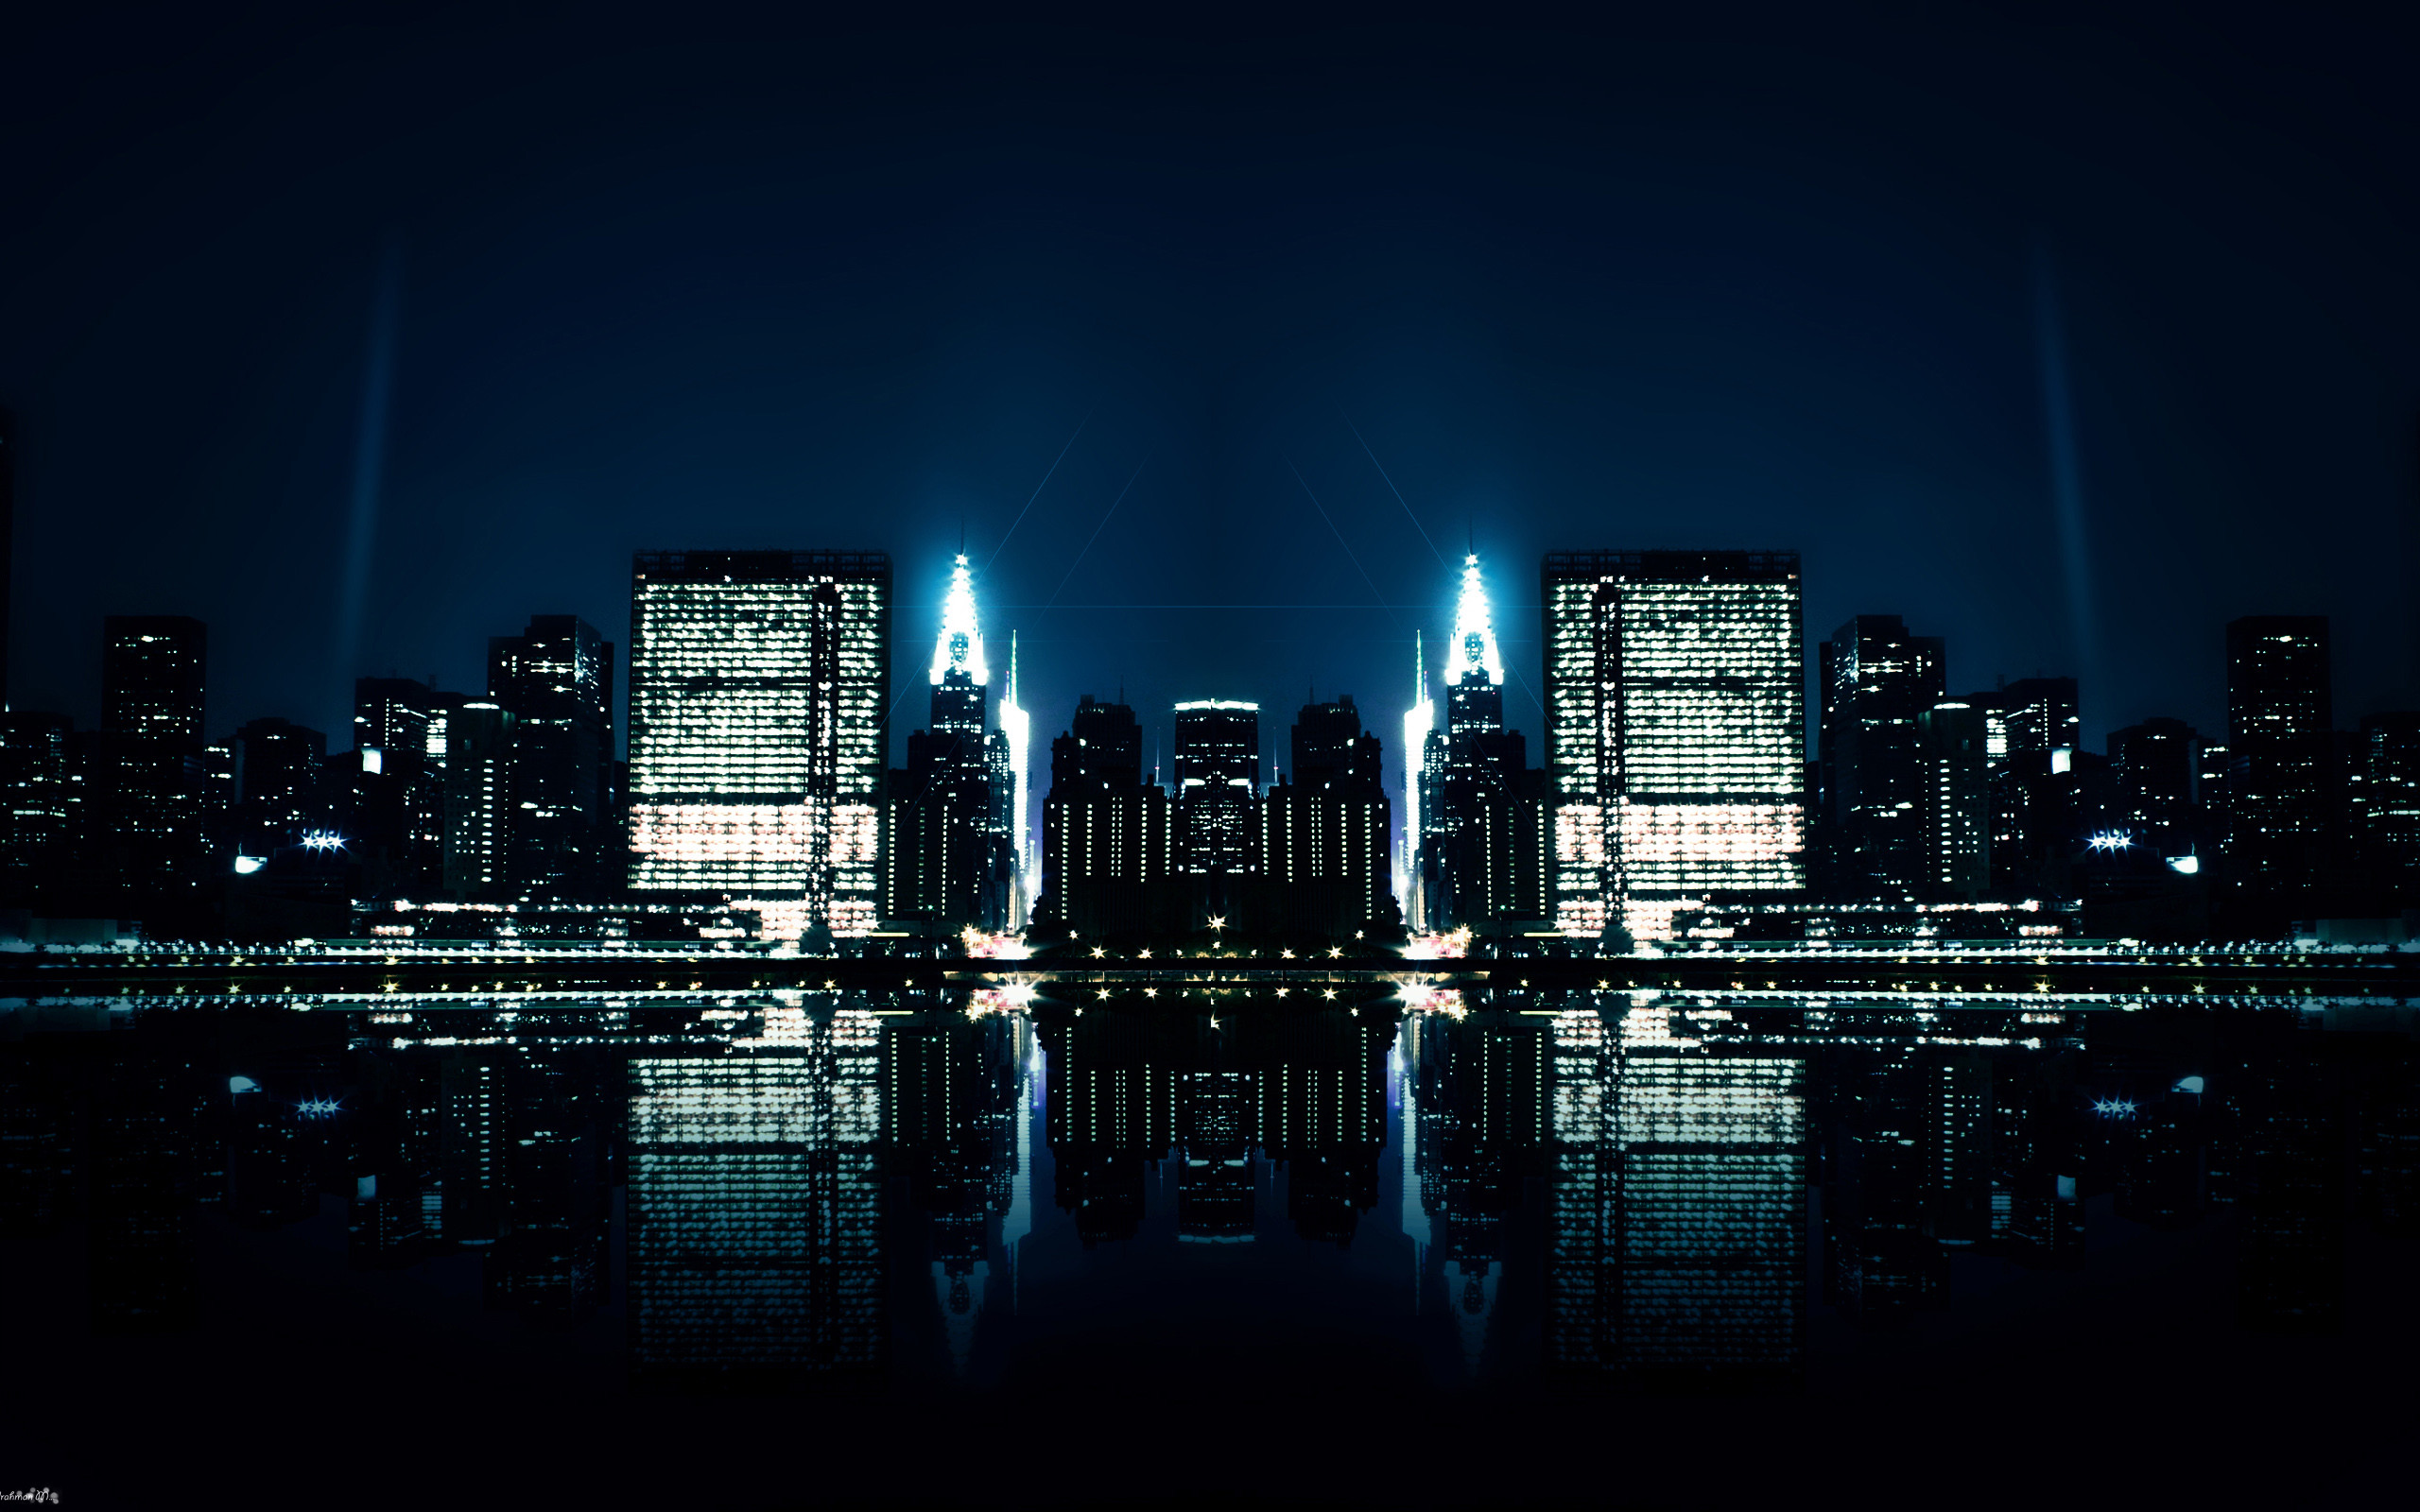 2560x1600 City Night Reflections Wallpapers | HD Wallpapers